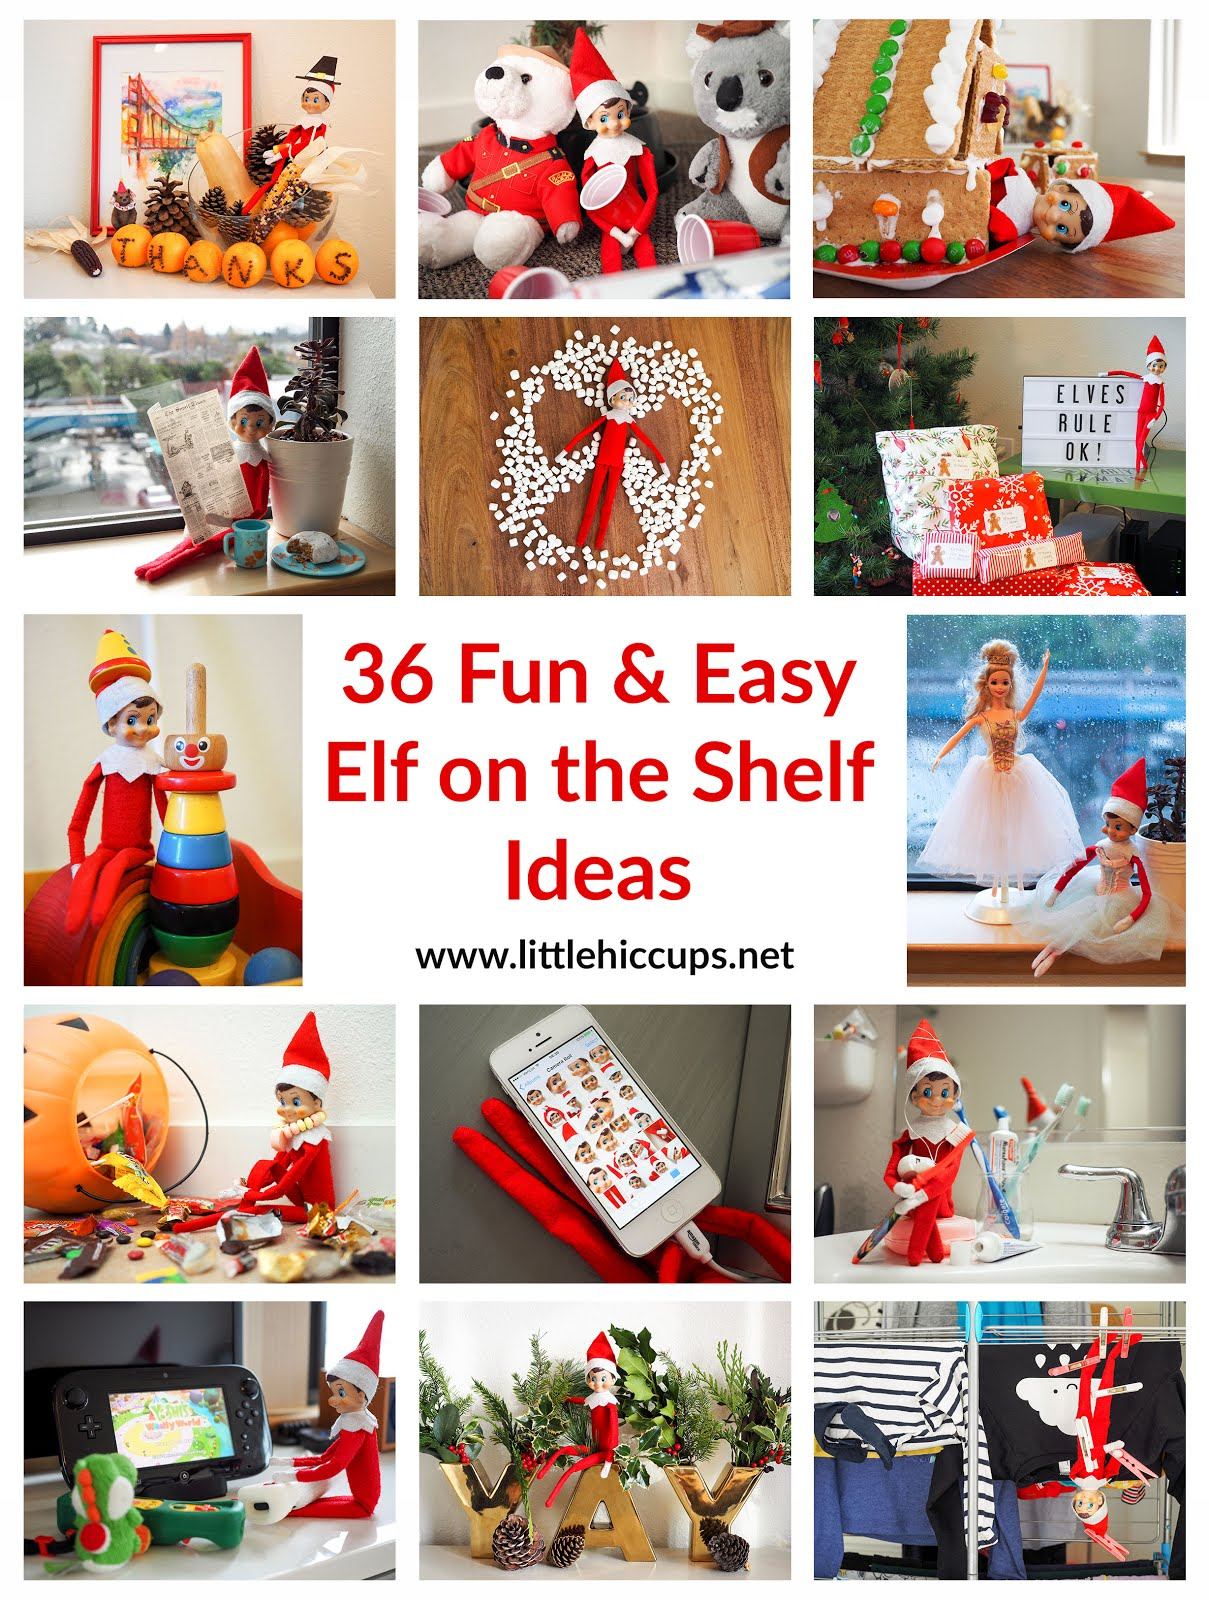 36 Fun & Easy Elf on the Shelf Ideas